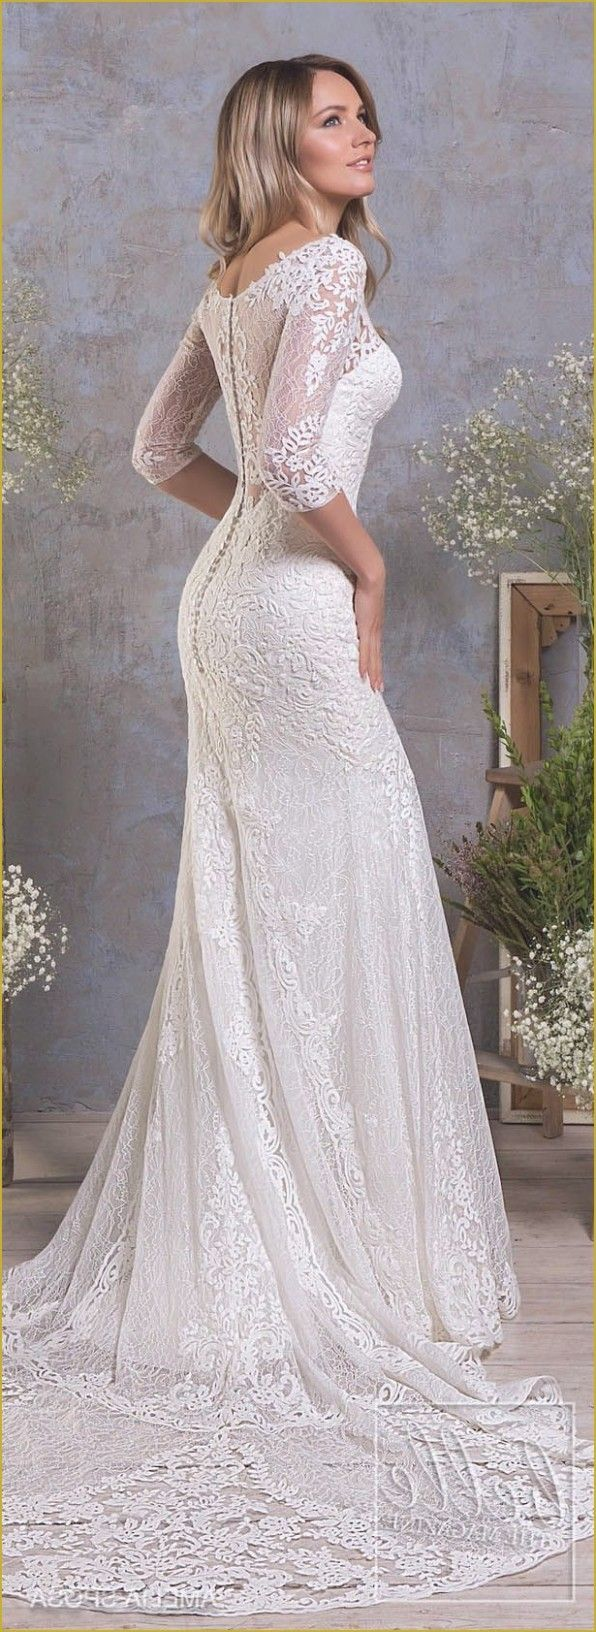 Five Reliable Sources To Learn About Amelia Sposa Wedding Dress Prices Amelia Sposa Wedding D Wedding Dress Prices Amelia Sposa Wedding Dress Wedding Dresses